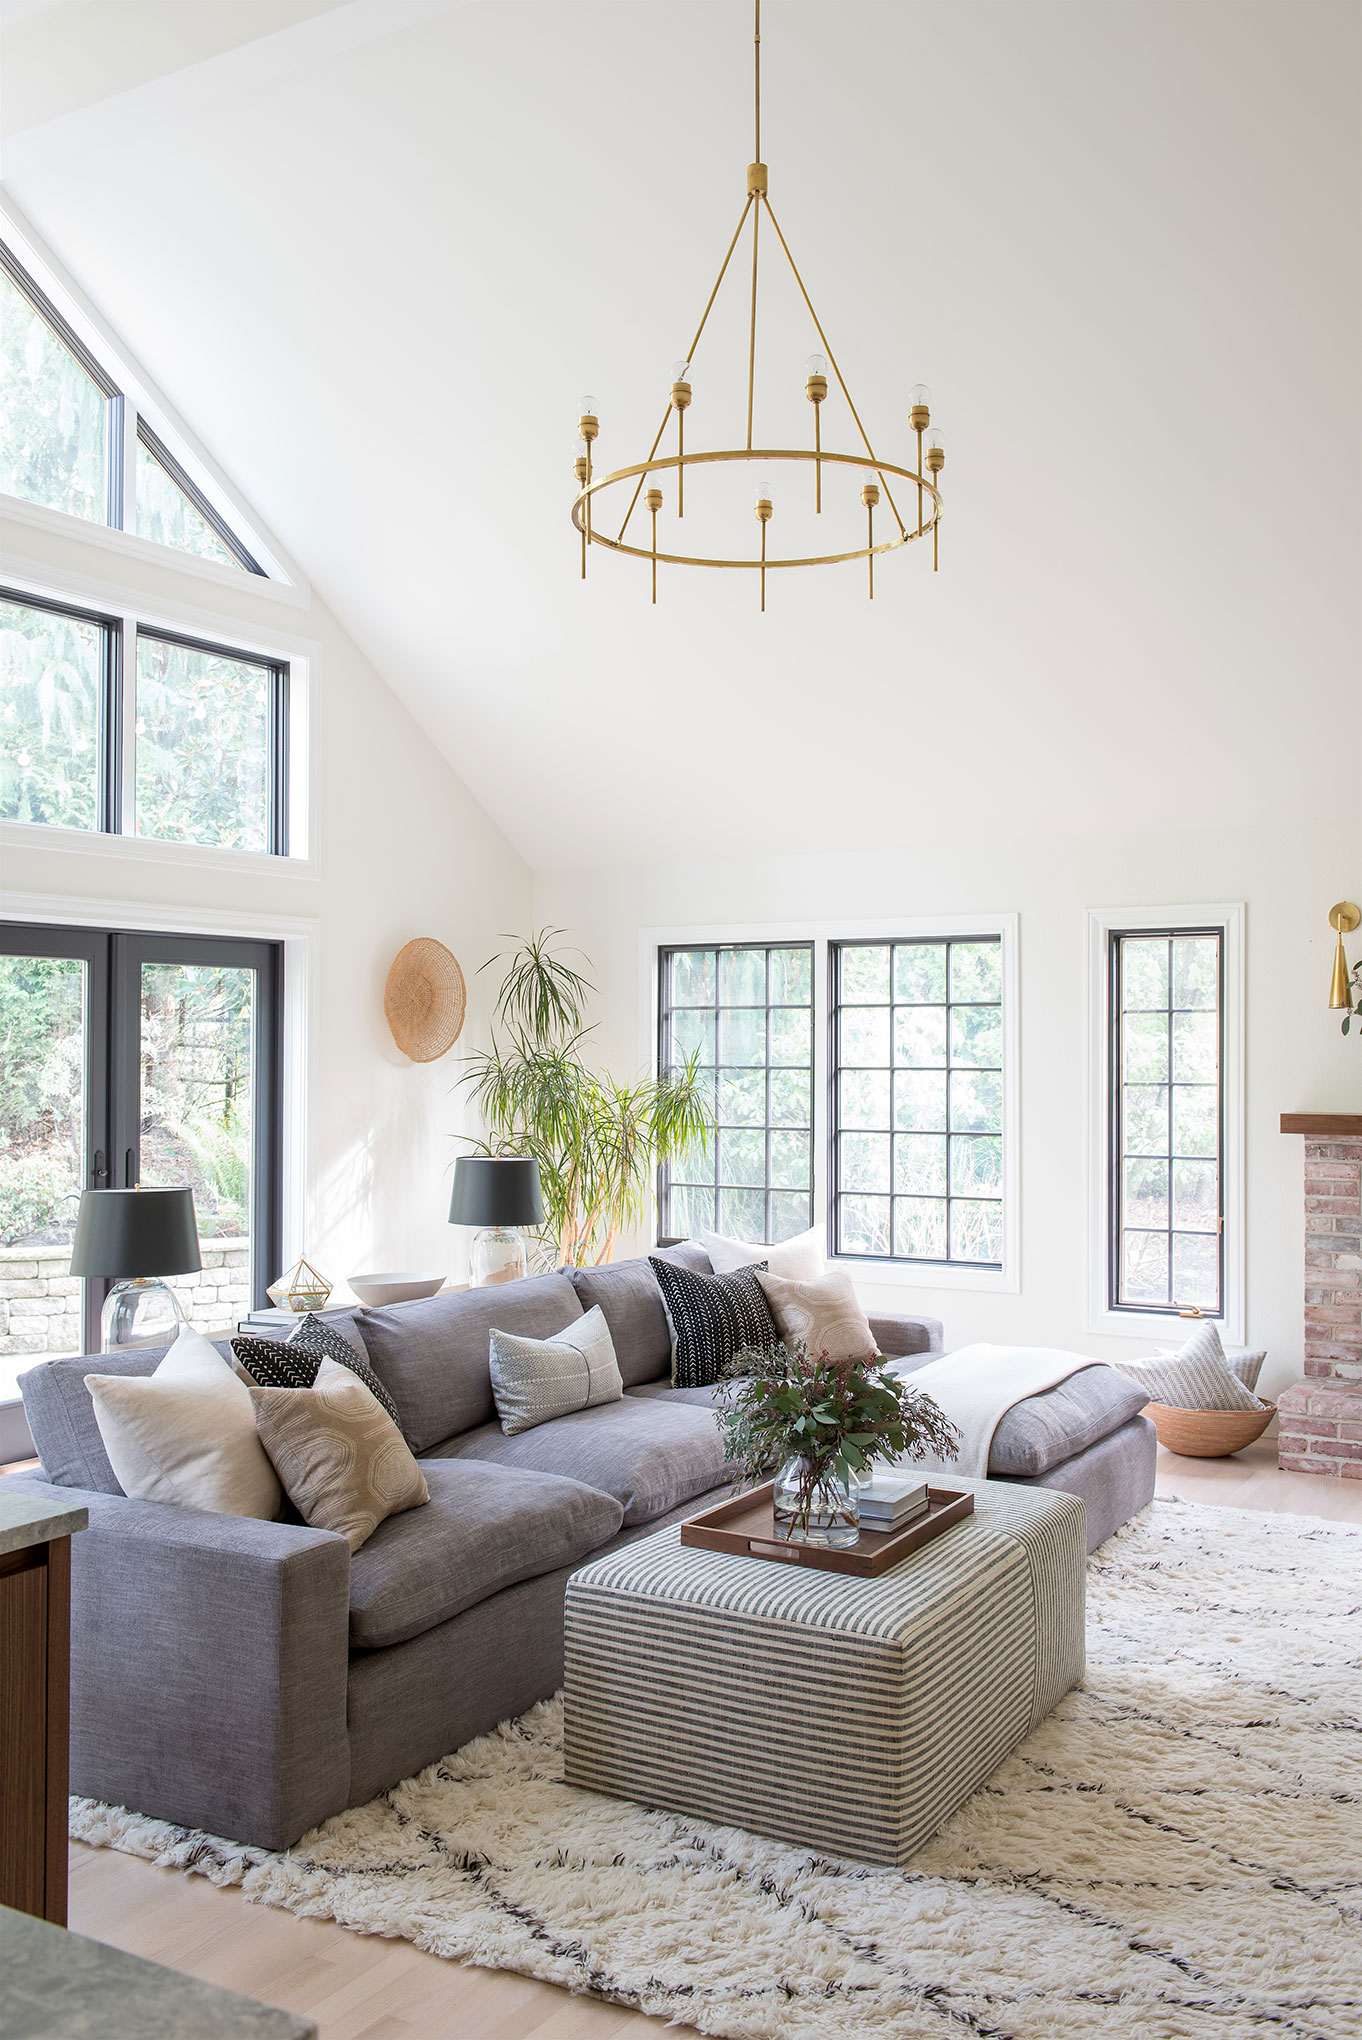 Northwest Hideaway | Amanda Steiner Design | Living Room with Chandelier